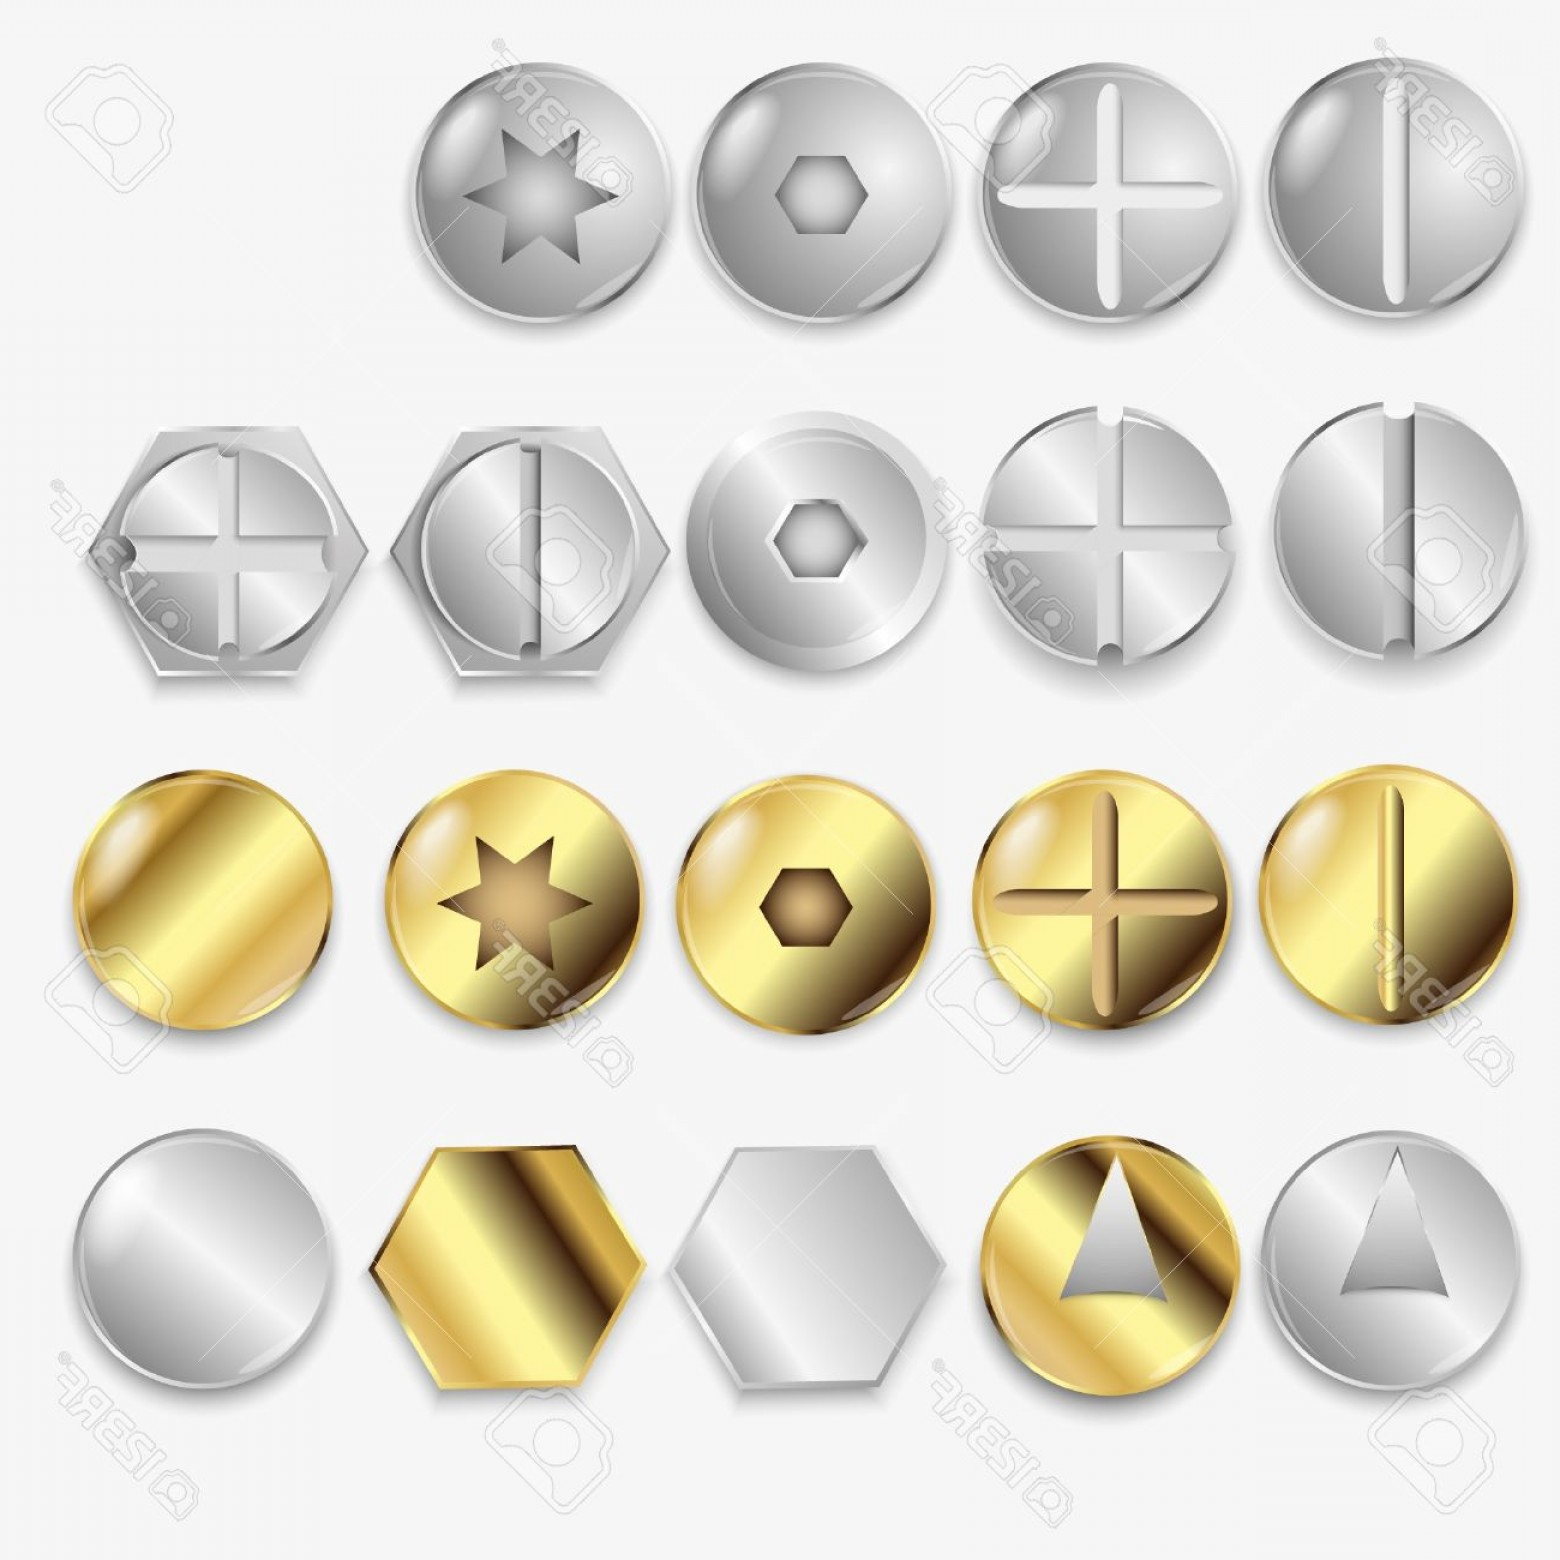 Screw Bolt Head Vector Art: Photobolts And Screws Isolated On White Background Illustration